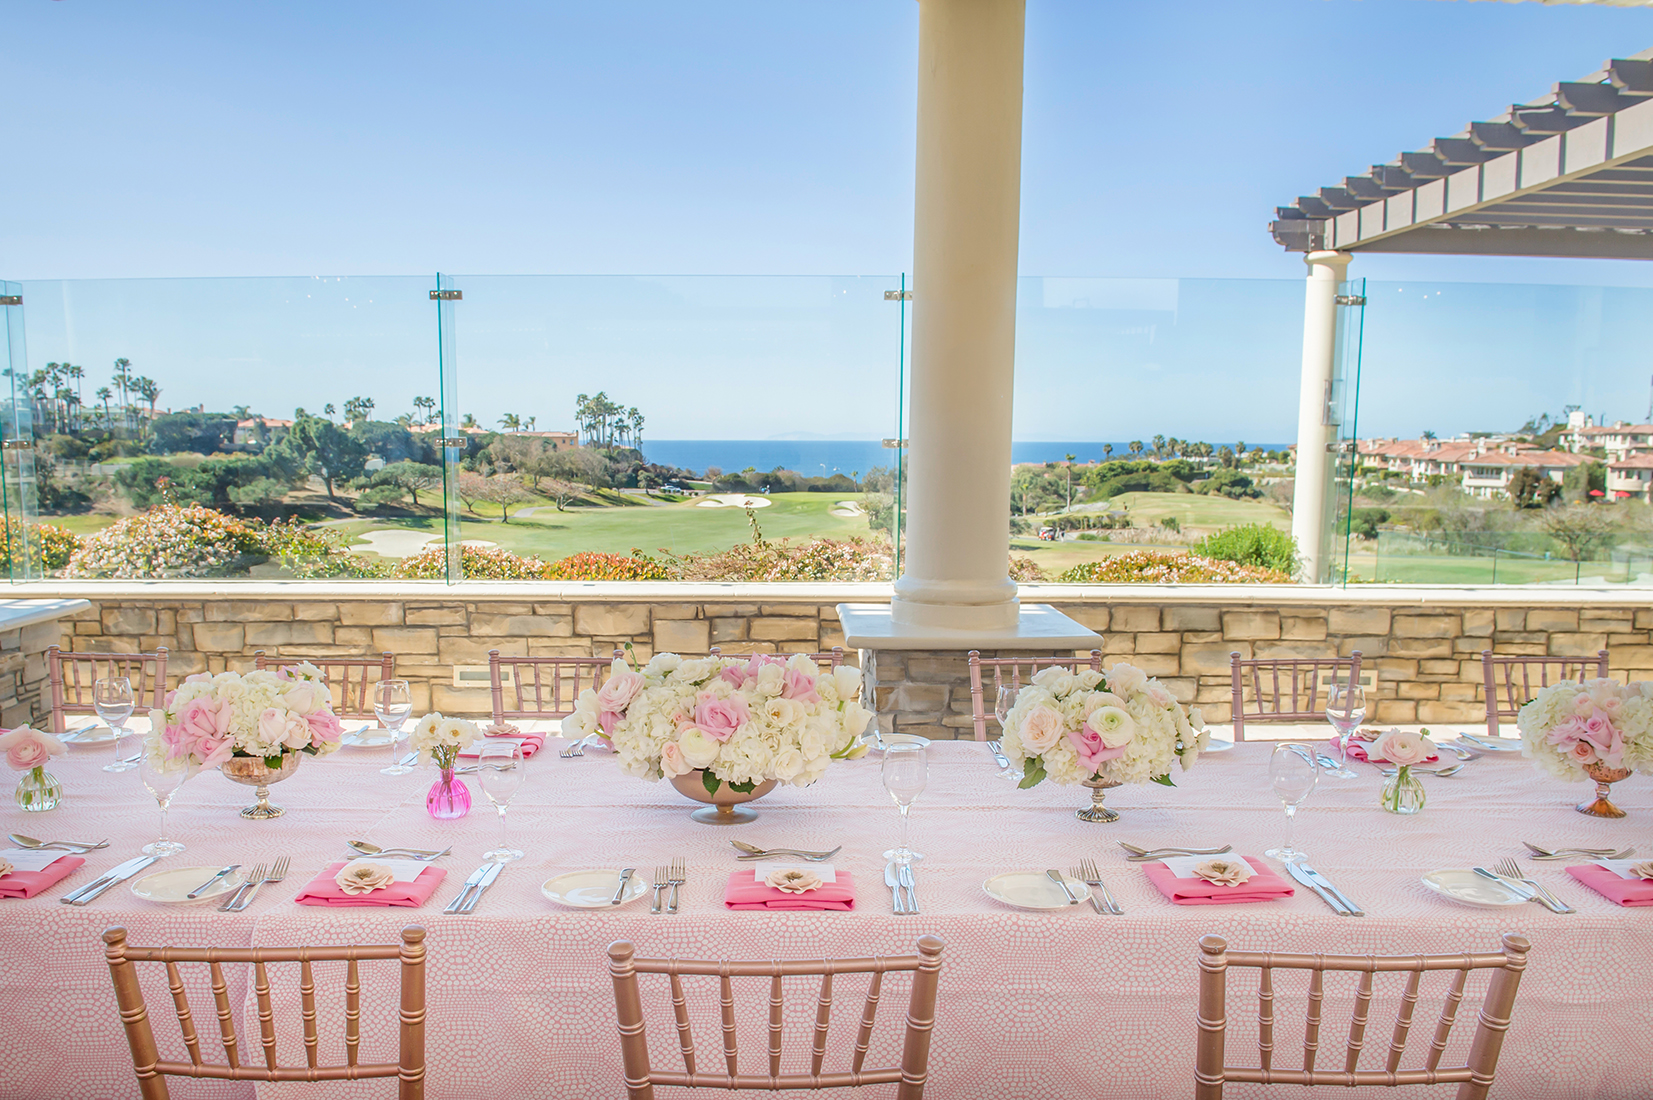 A close up image of the pastel pink dining set up with white and pink rose floral center pieces